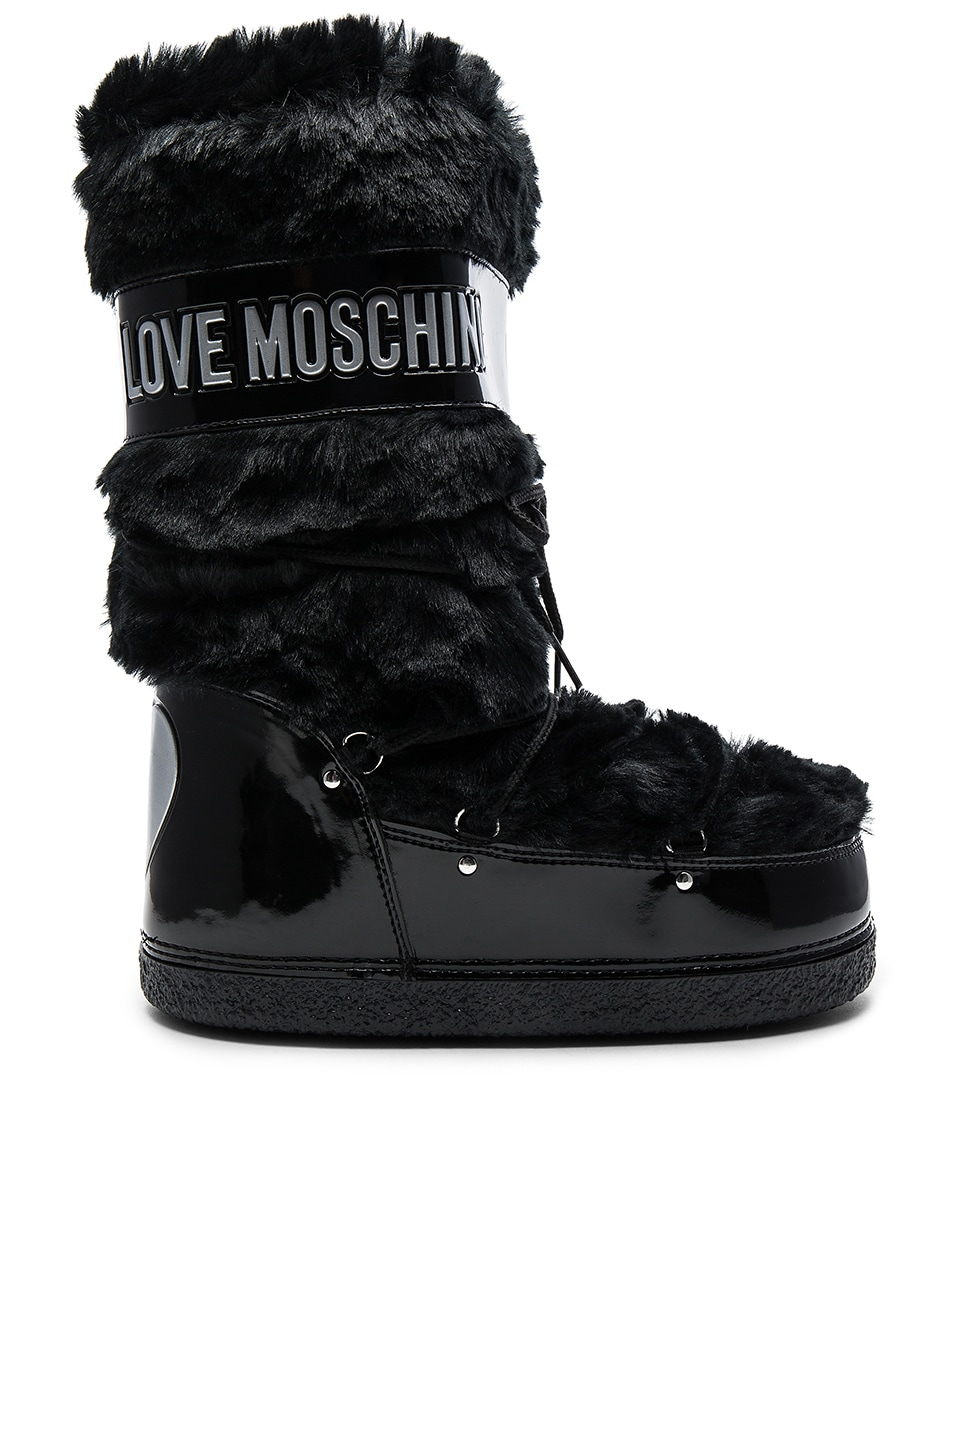 Love Moschino Faux Fur Snow Boot in Black